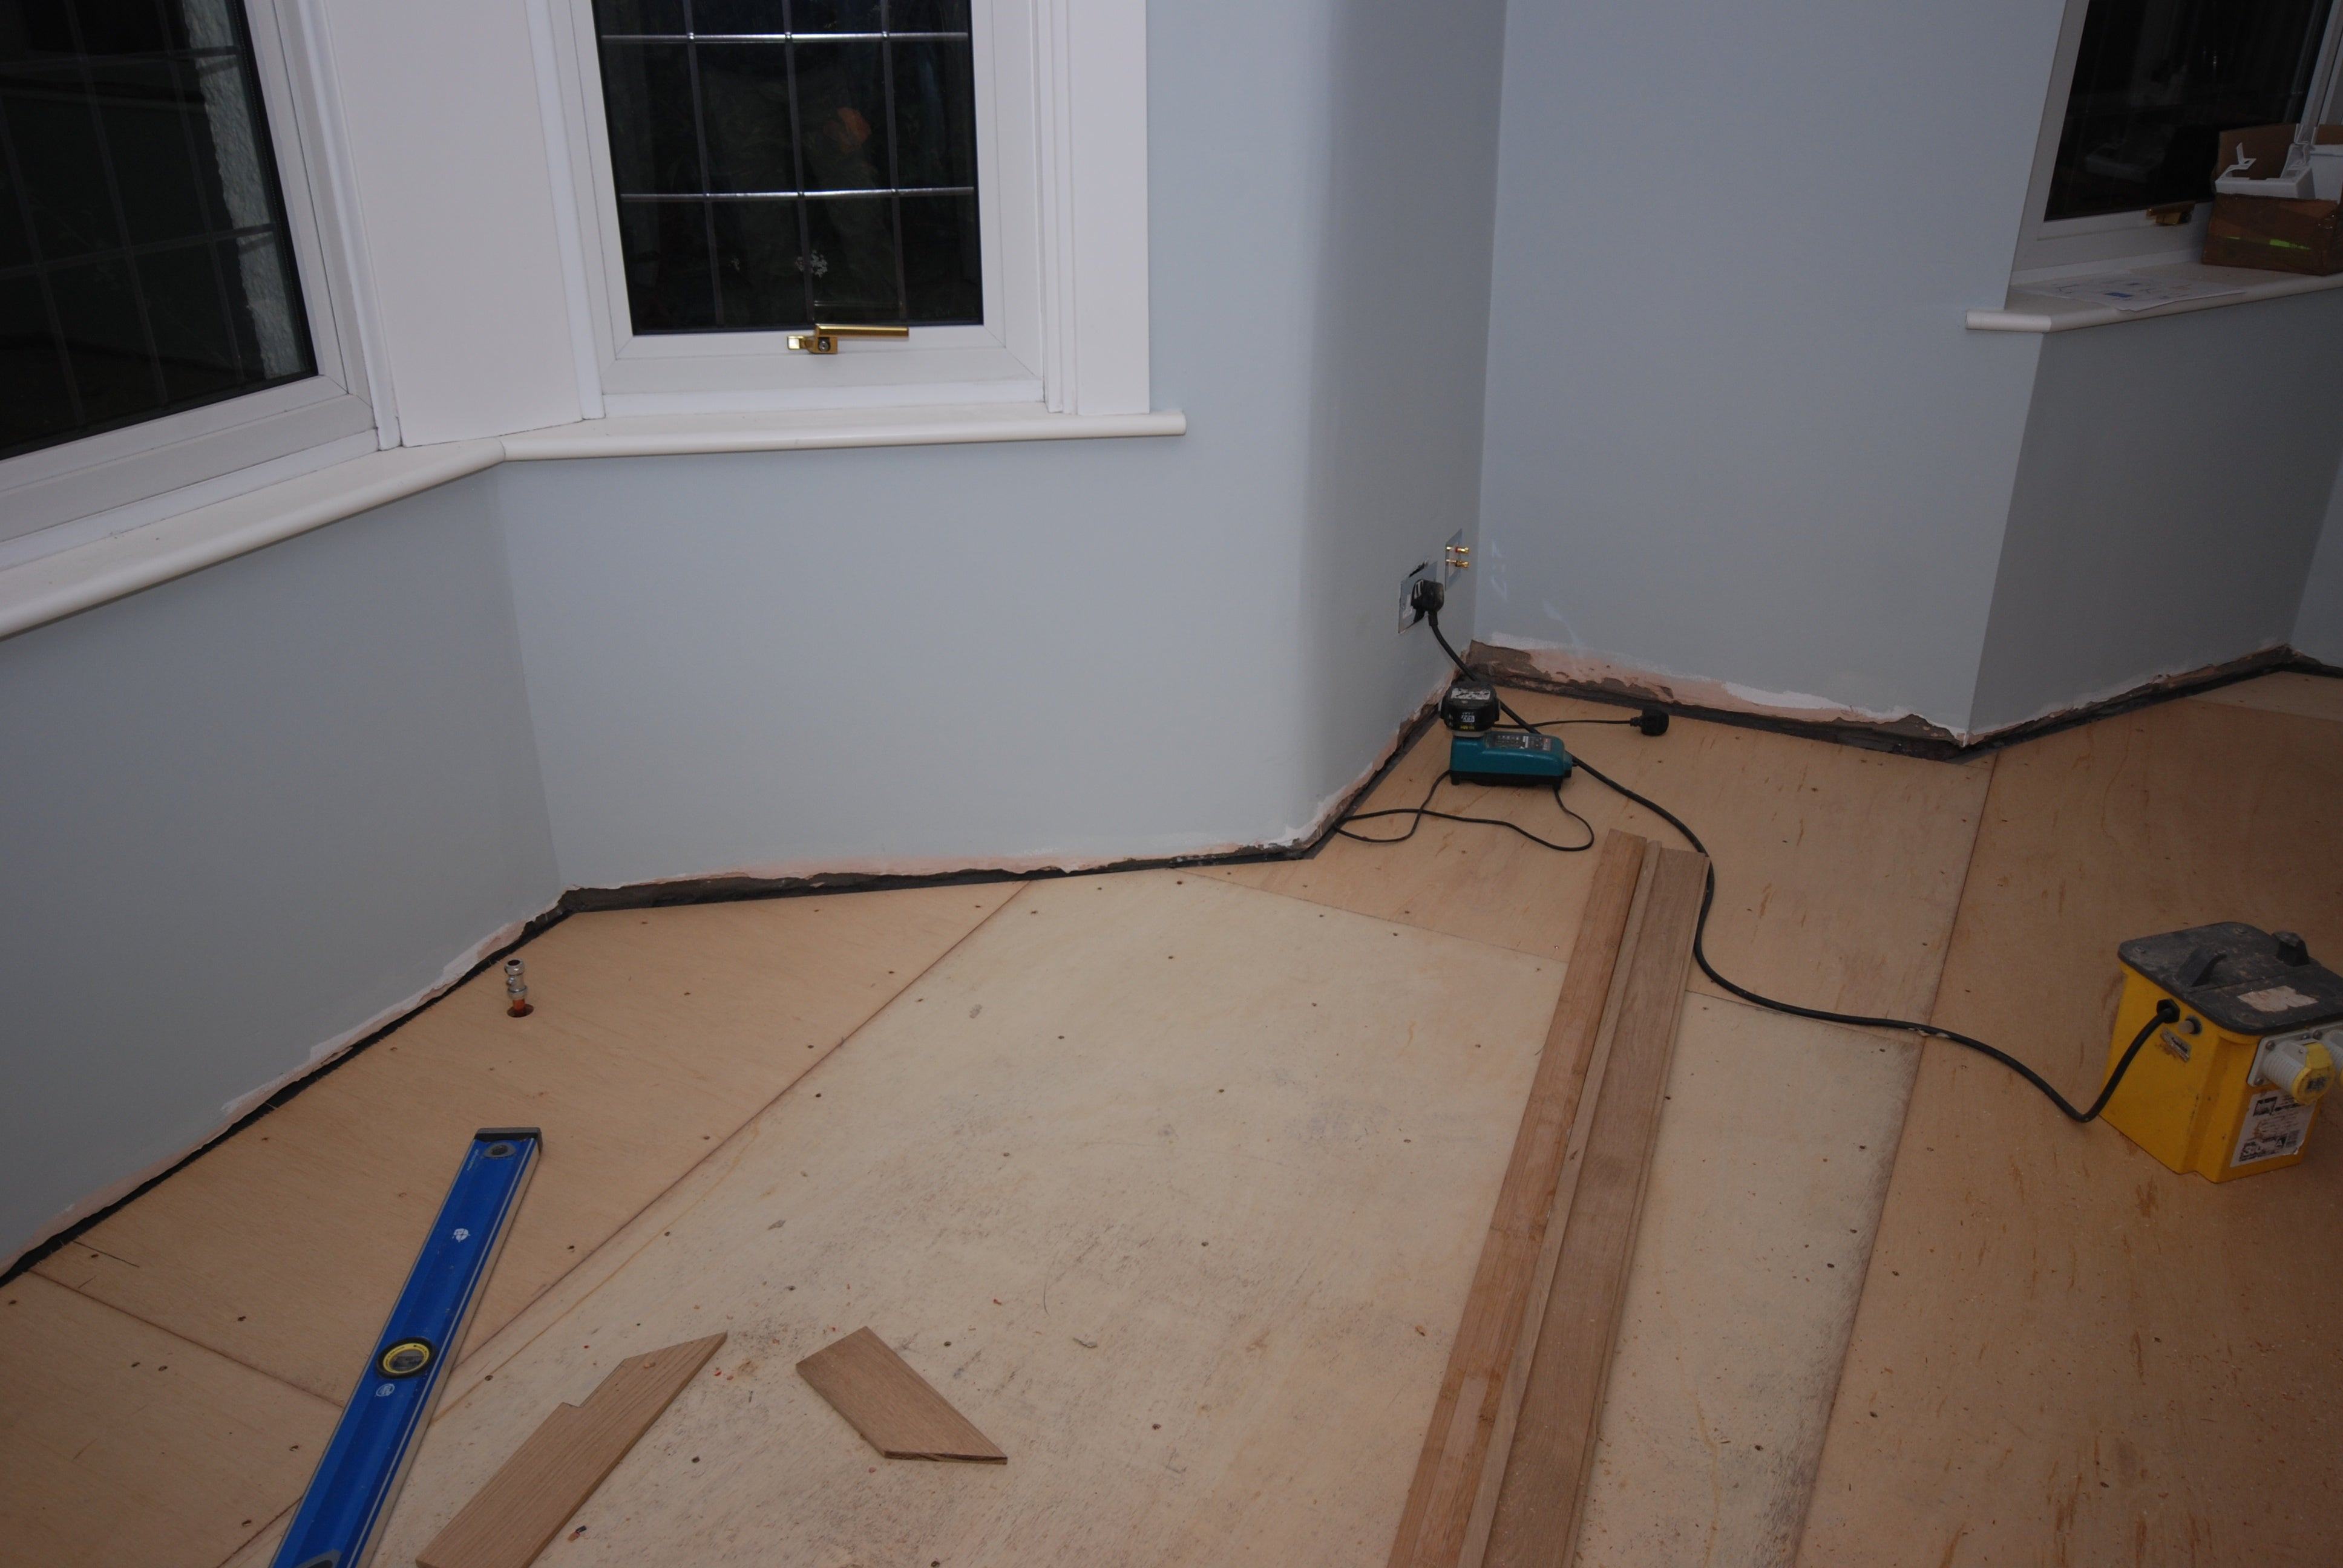 preparing subfloor for installation of wood floor